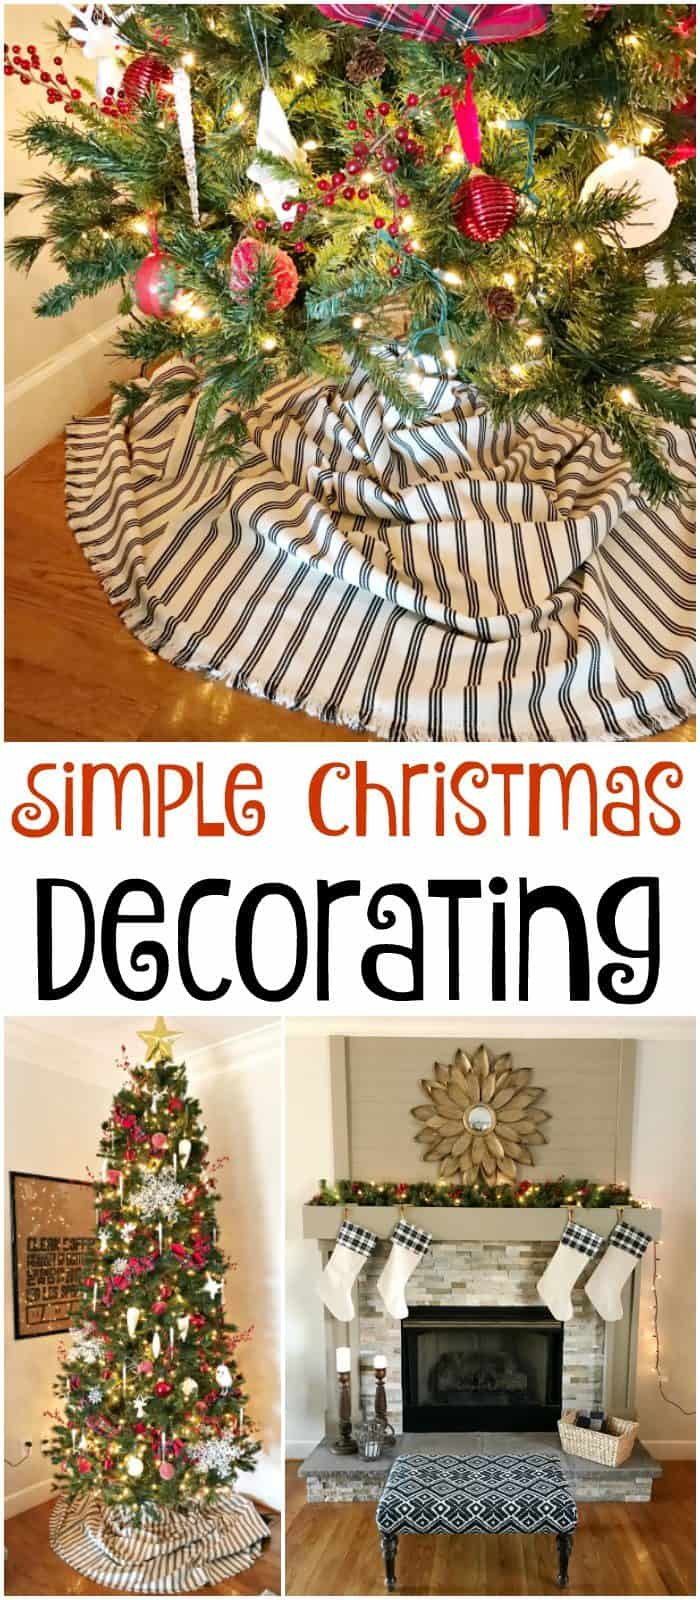 Simple christmas decorating at home with the barkers for Simple home decor for christmas